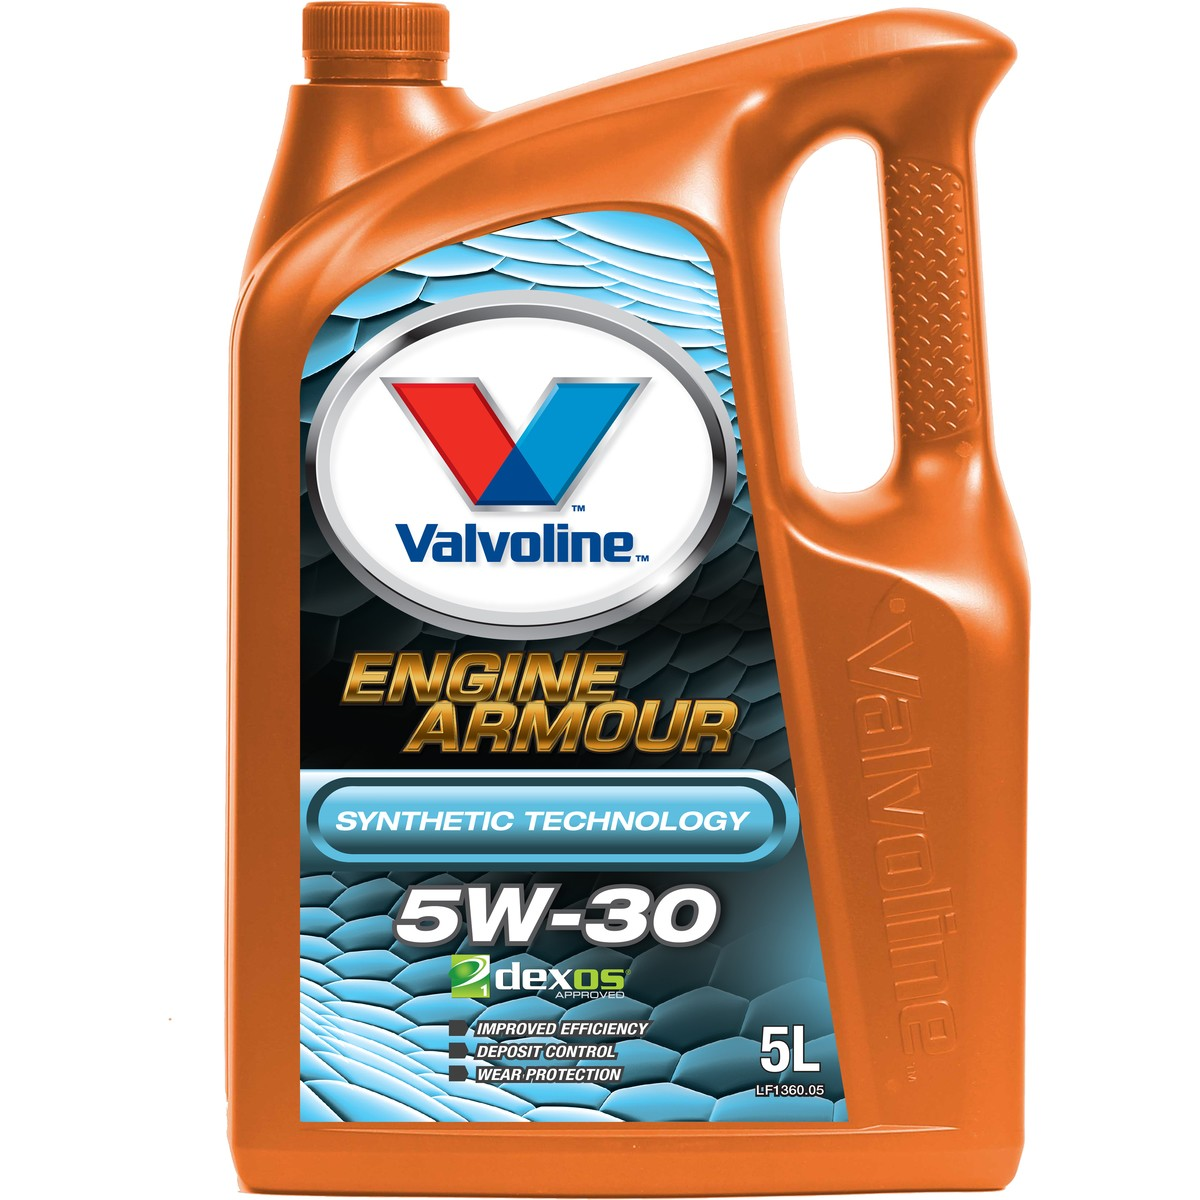 Valvoline 5w30 Valvoline Engine Armour 5w-30 5l | Big W